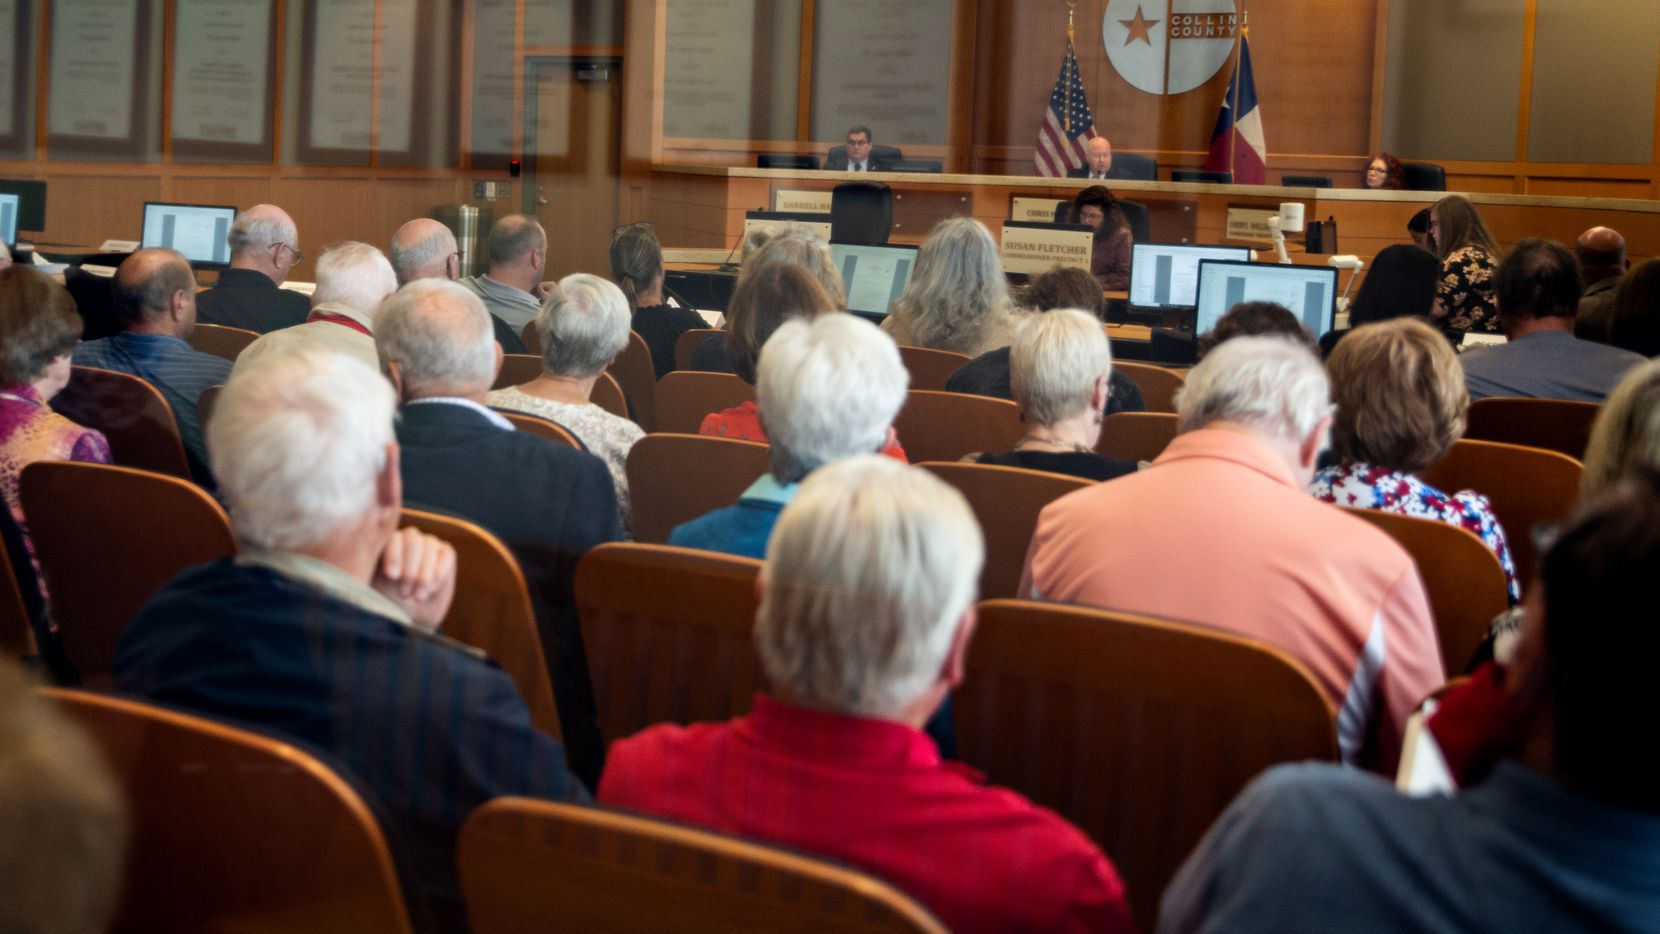 More than a hundred people came to observe and speak at the Collin County Commissioners Court meeting at the Collin County Administration Building in McKinney, TX on Monday, May 24, 2021.